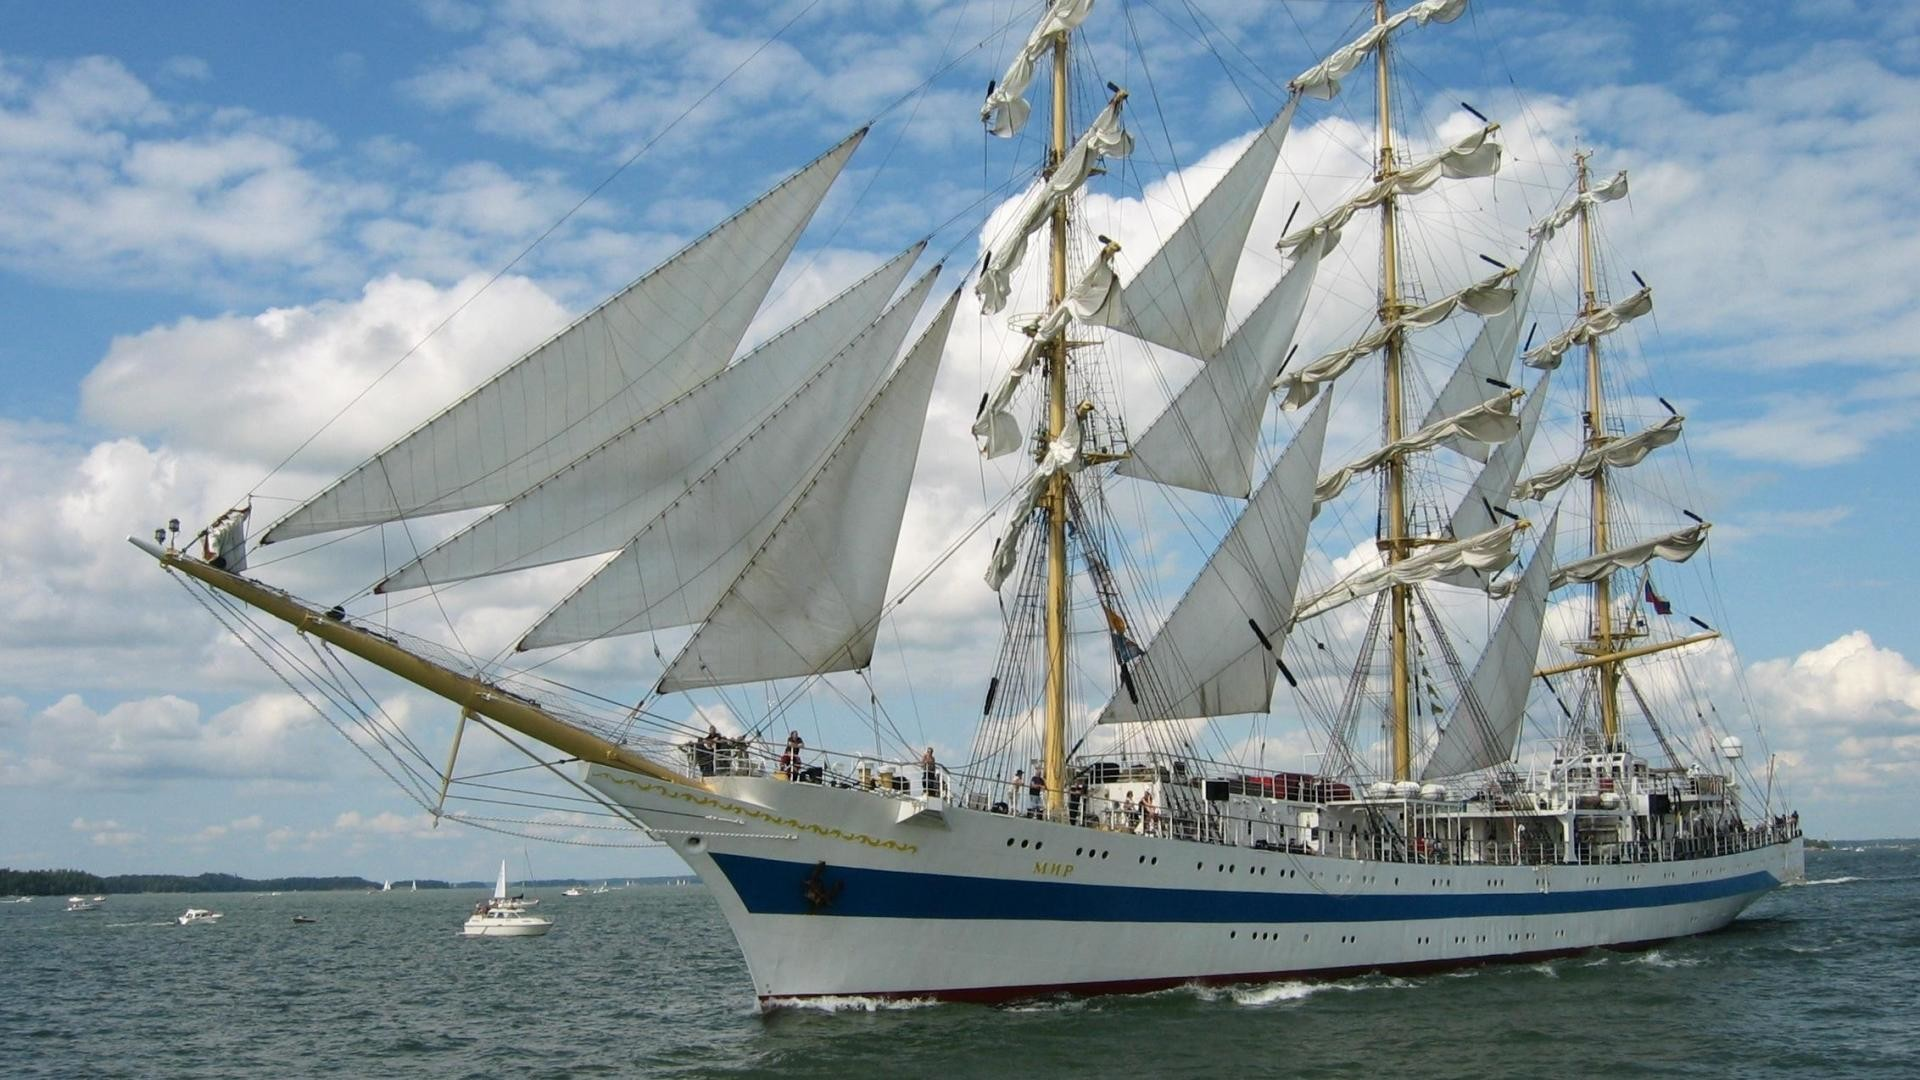 Res: 1920x1080, Pin Tall ships wallpapers backgrounds